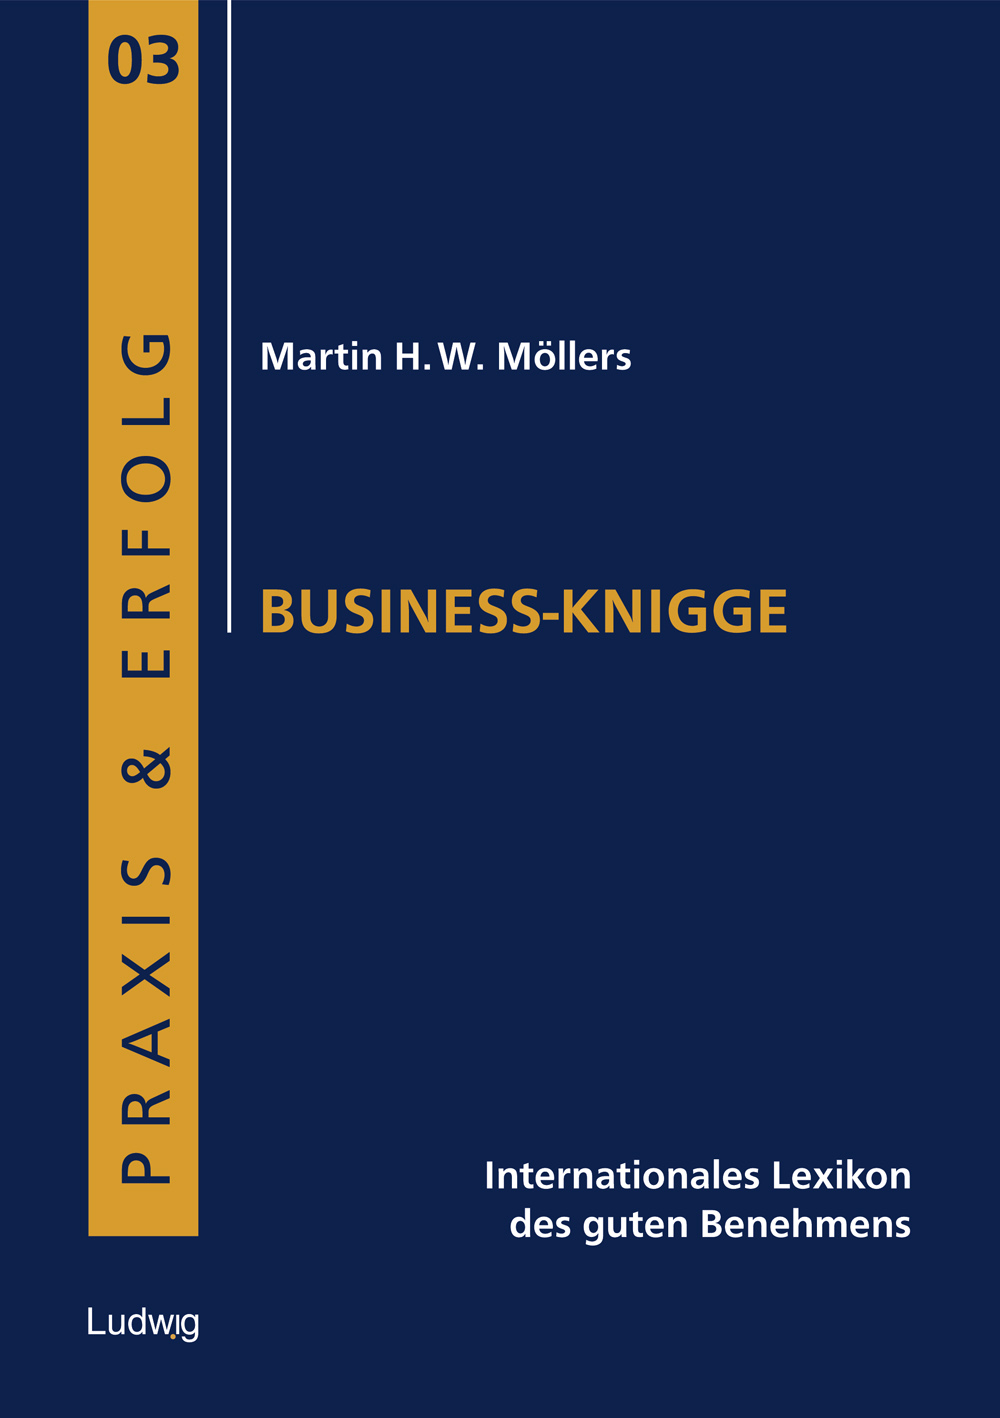 Business-Knigge Martin H. W. Möllers